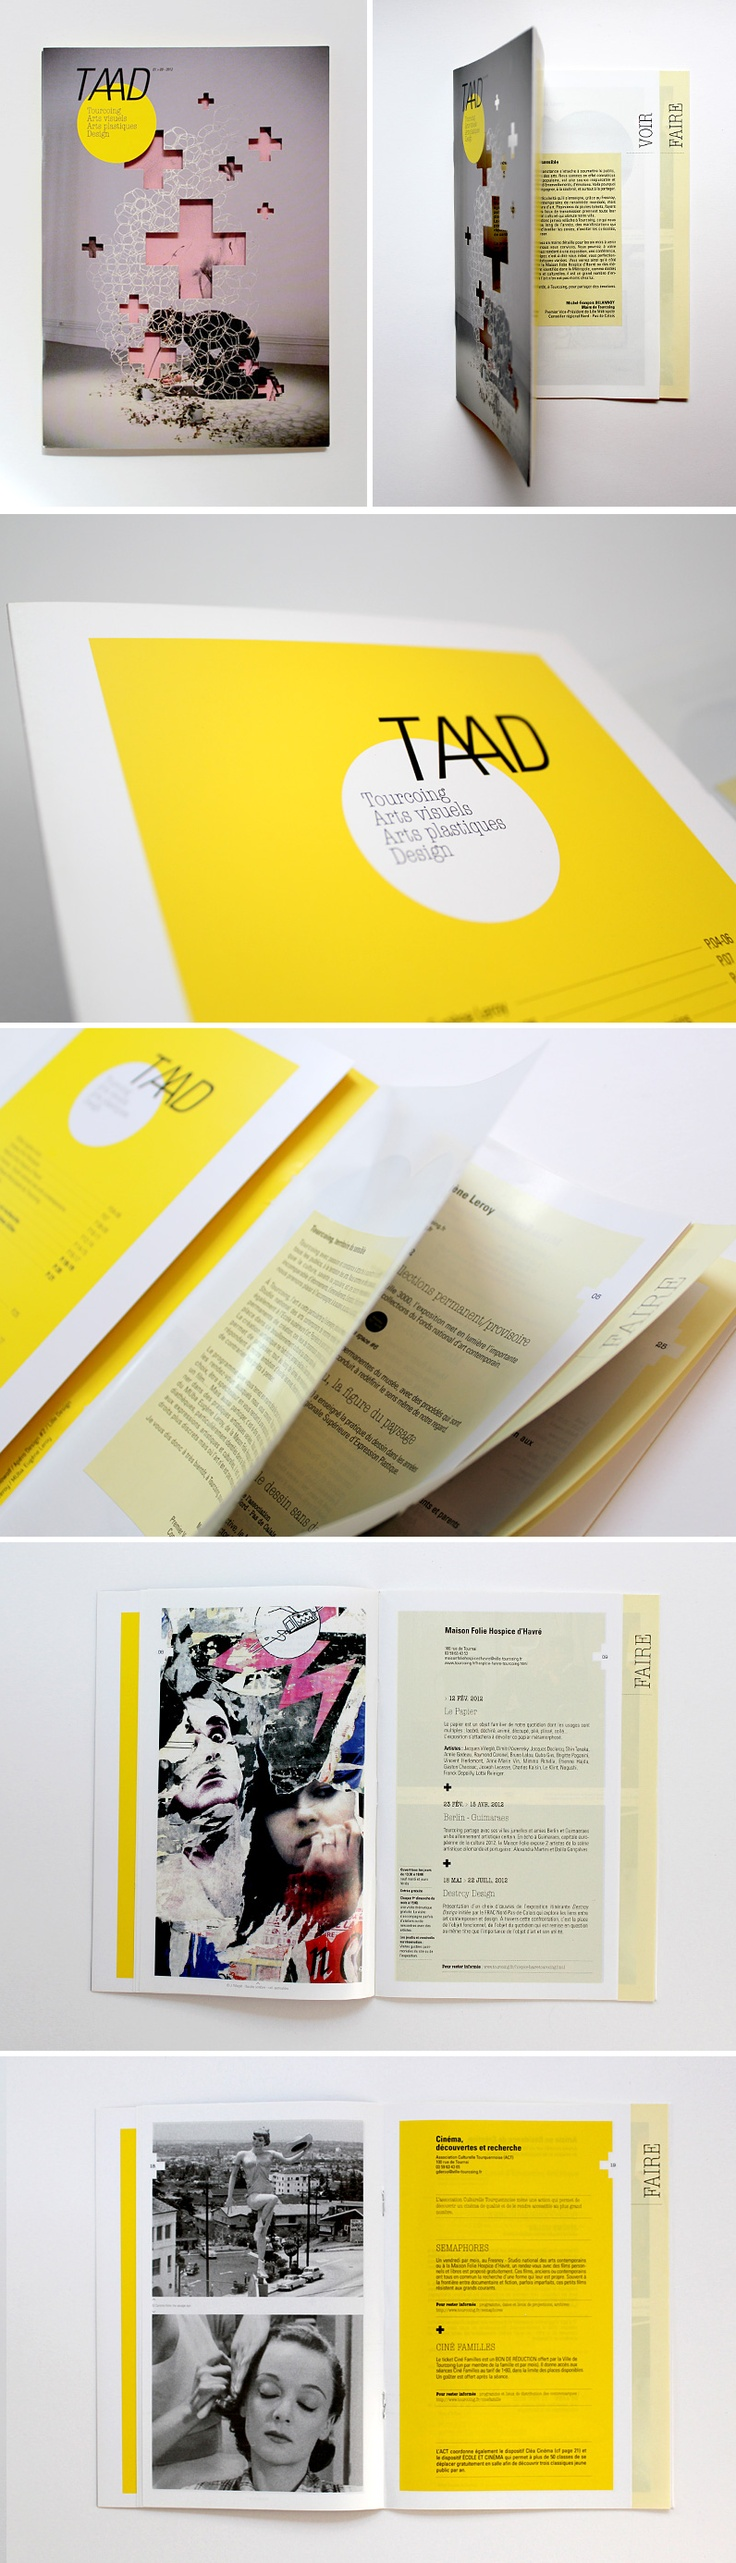 TAAD Program #design #Magazine #Layout